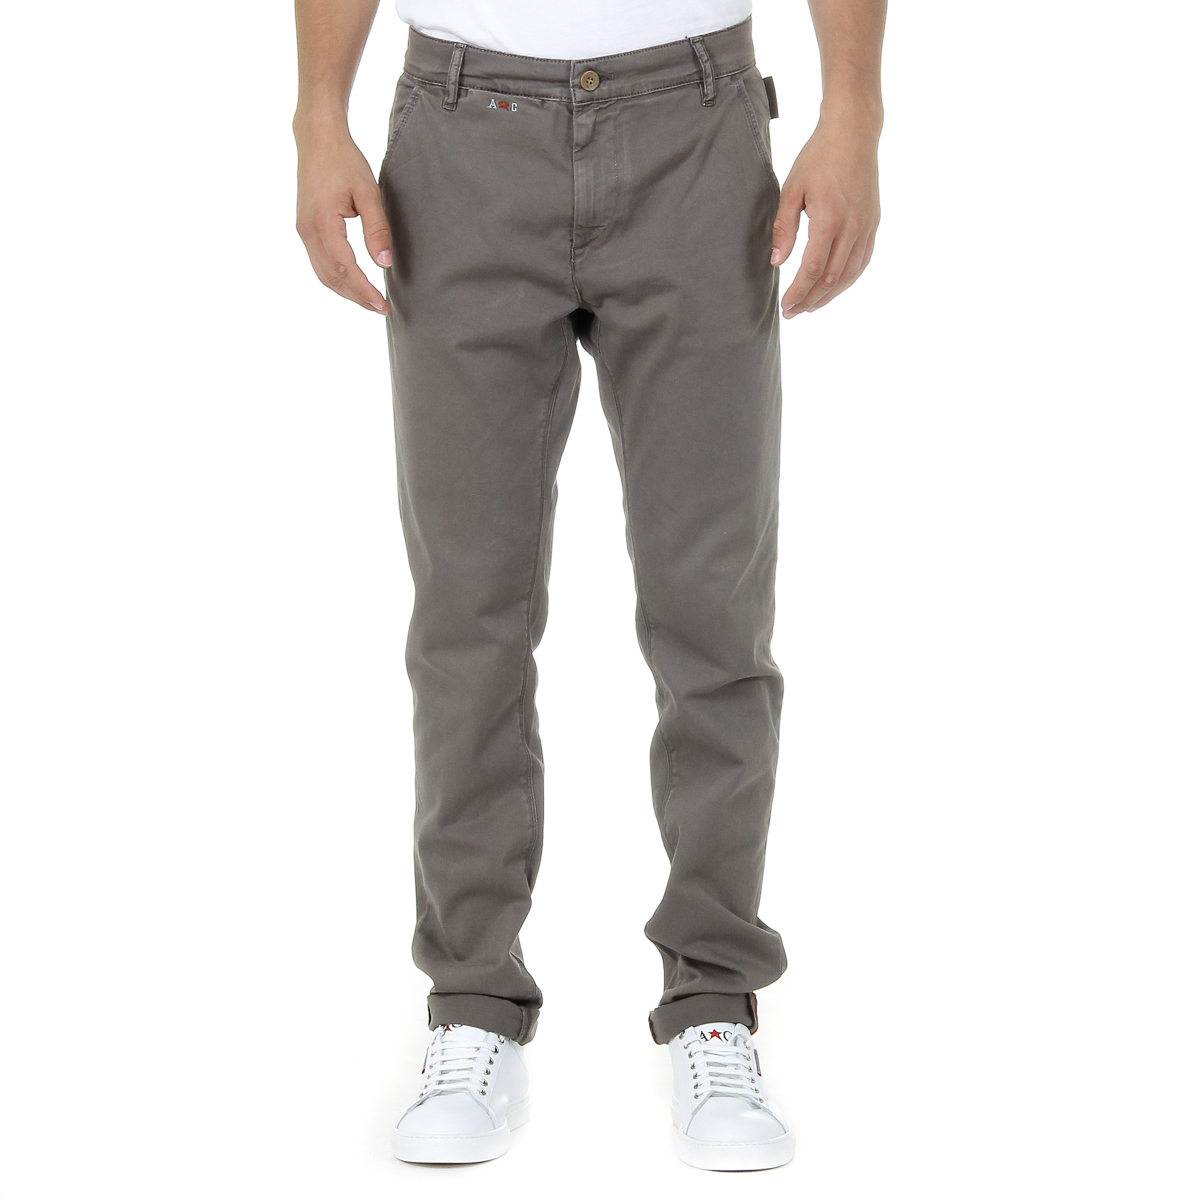 Primary image for Andrew Charles Mens Pants Brown AMARA